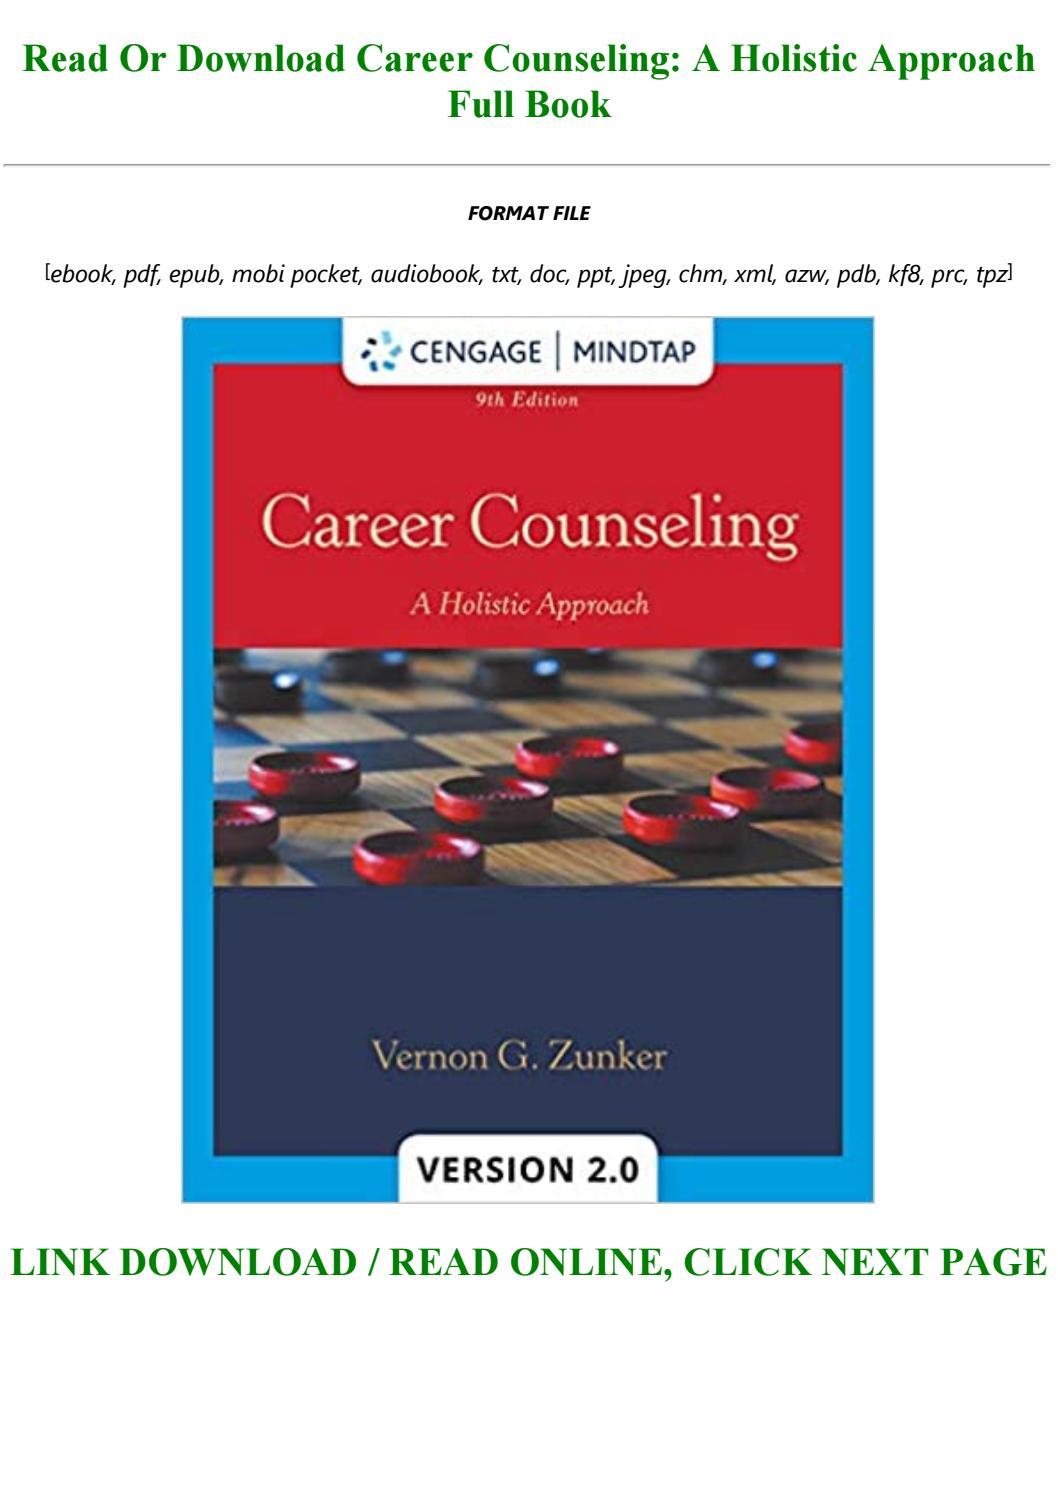 career counseling a holistic approach 9th edition pdf free